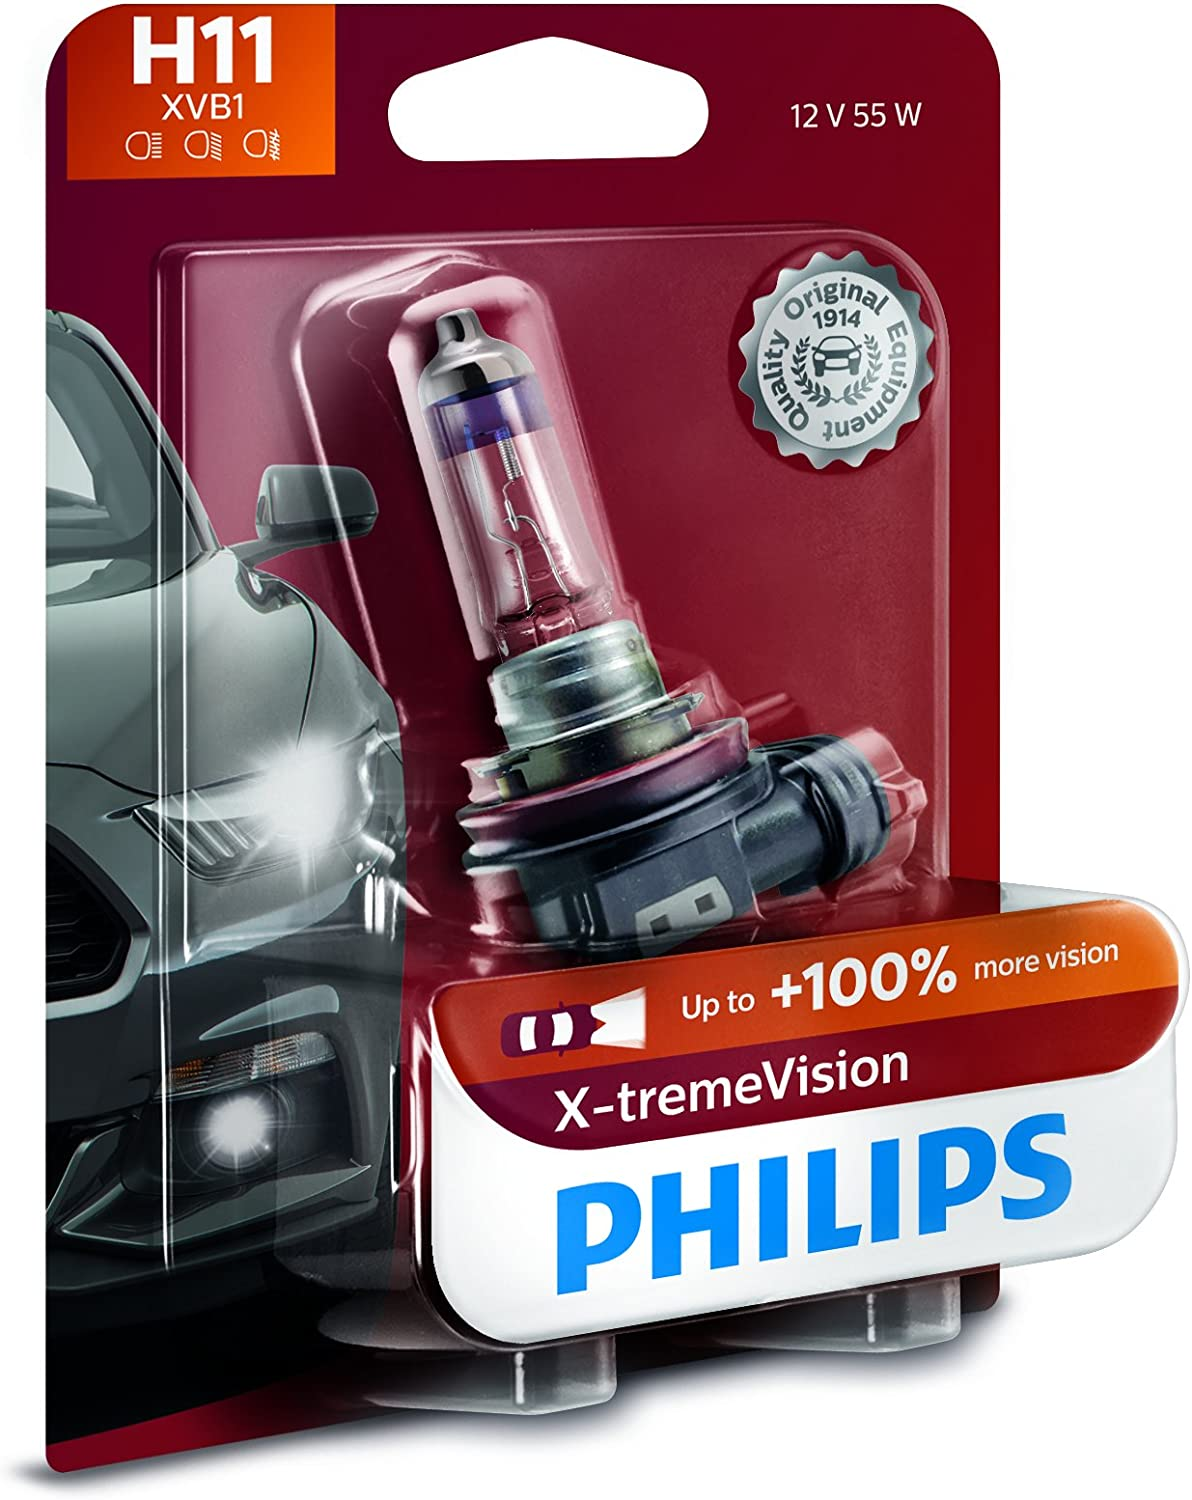 Philips 12362XVB1 H11 X-tremeVision Upgrade Headlight Bulb with up to 100% More Vision, 1 Pack